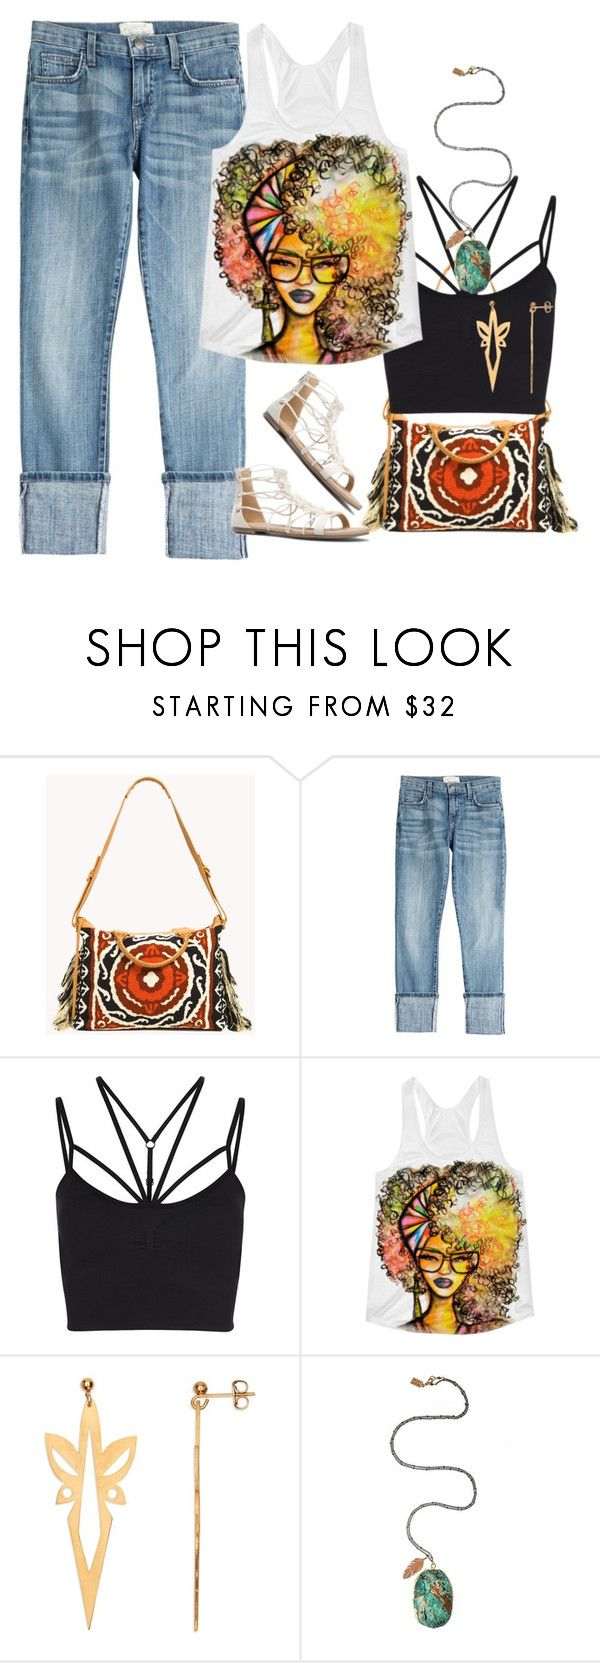 """""""just kick'en it!"""" by babygirltrice ❤ liked on Polyvore featuring Ella Moss, Current/Elliott, Sweaty Betty and Brave Lotus"""